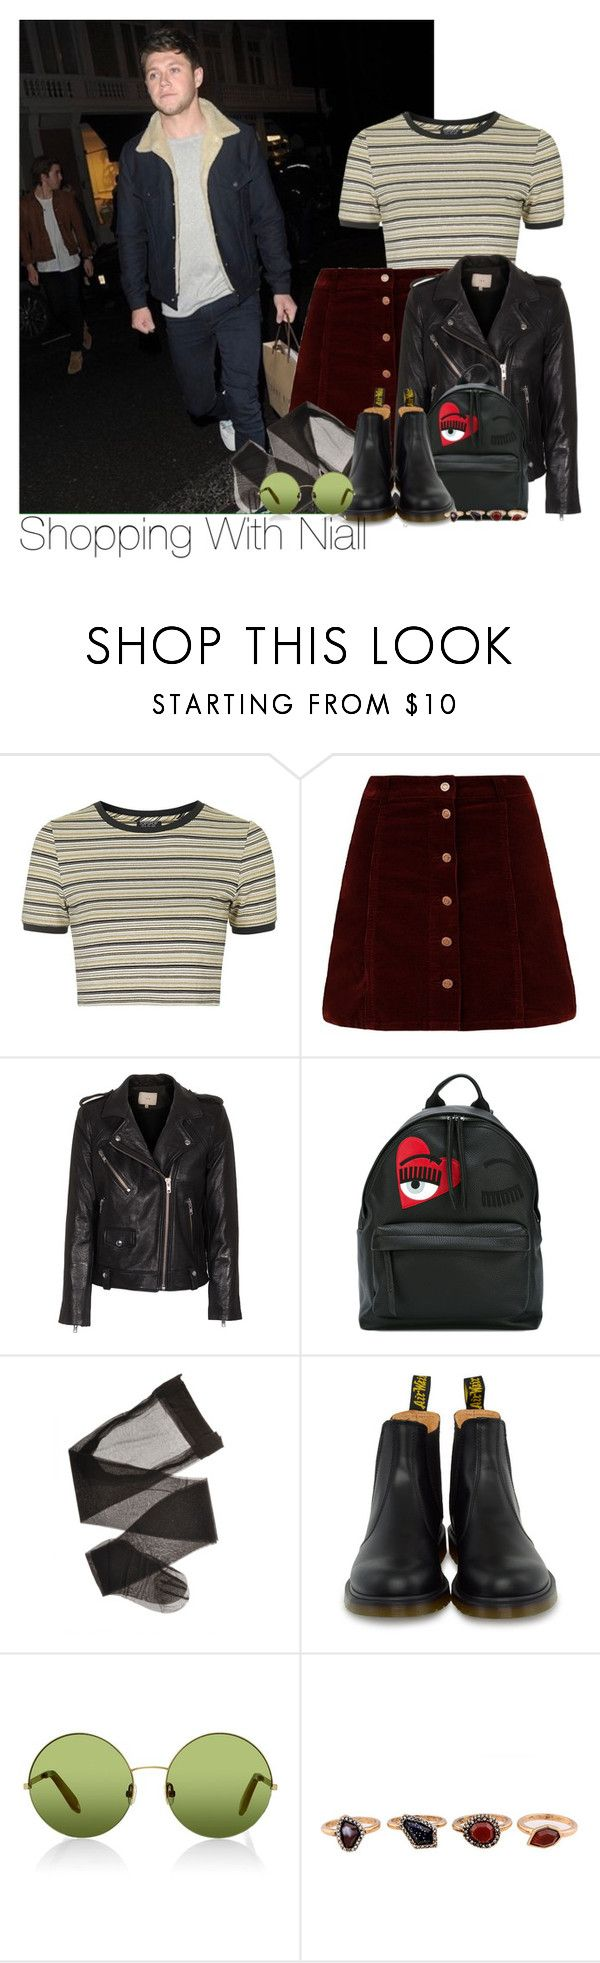 """""""Niall~#67"""" by lauren-beth-owens ❤ liked on Polyvore featuring Topshop, IRO, Chiara Ferragni, Dr. Martens, Victoria, Victoria Beckham, WithChic and NiallHoran"""